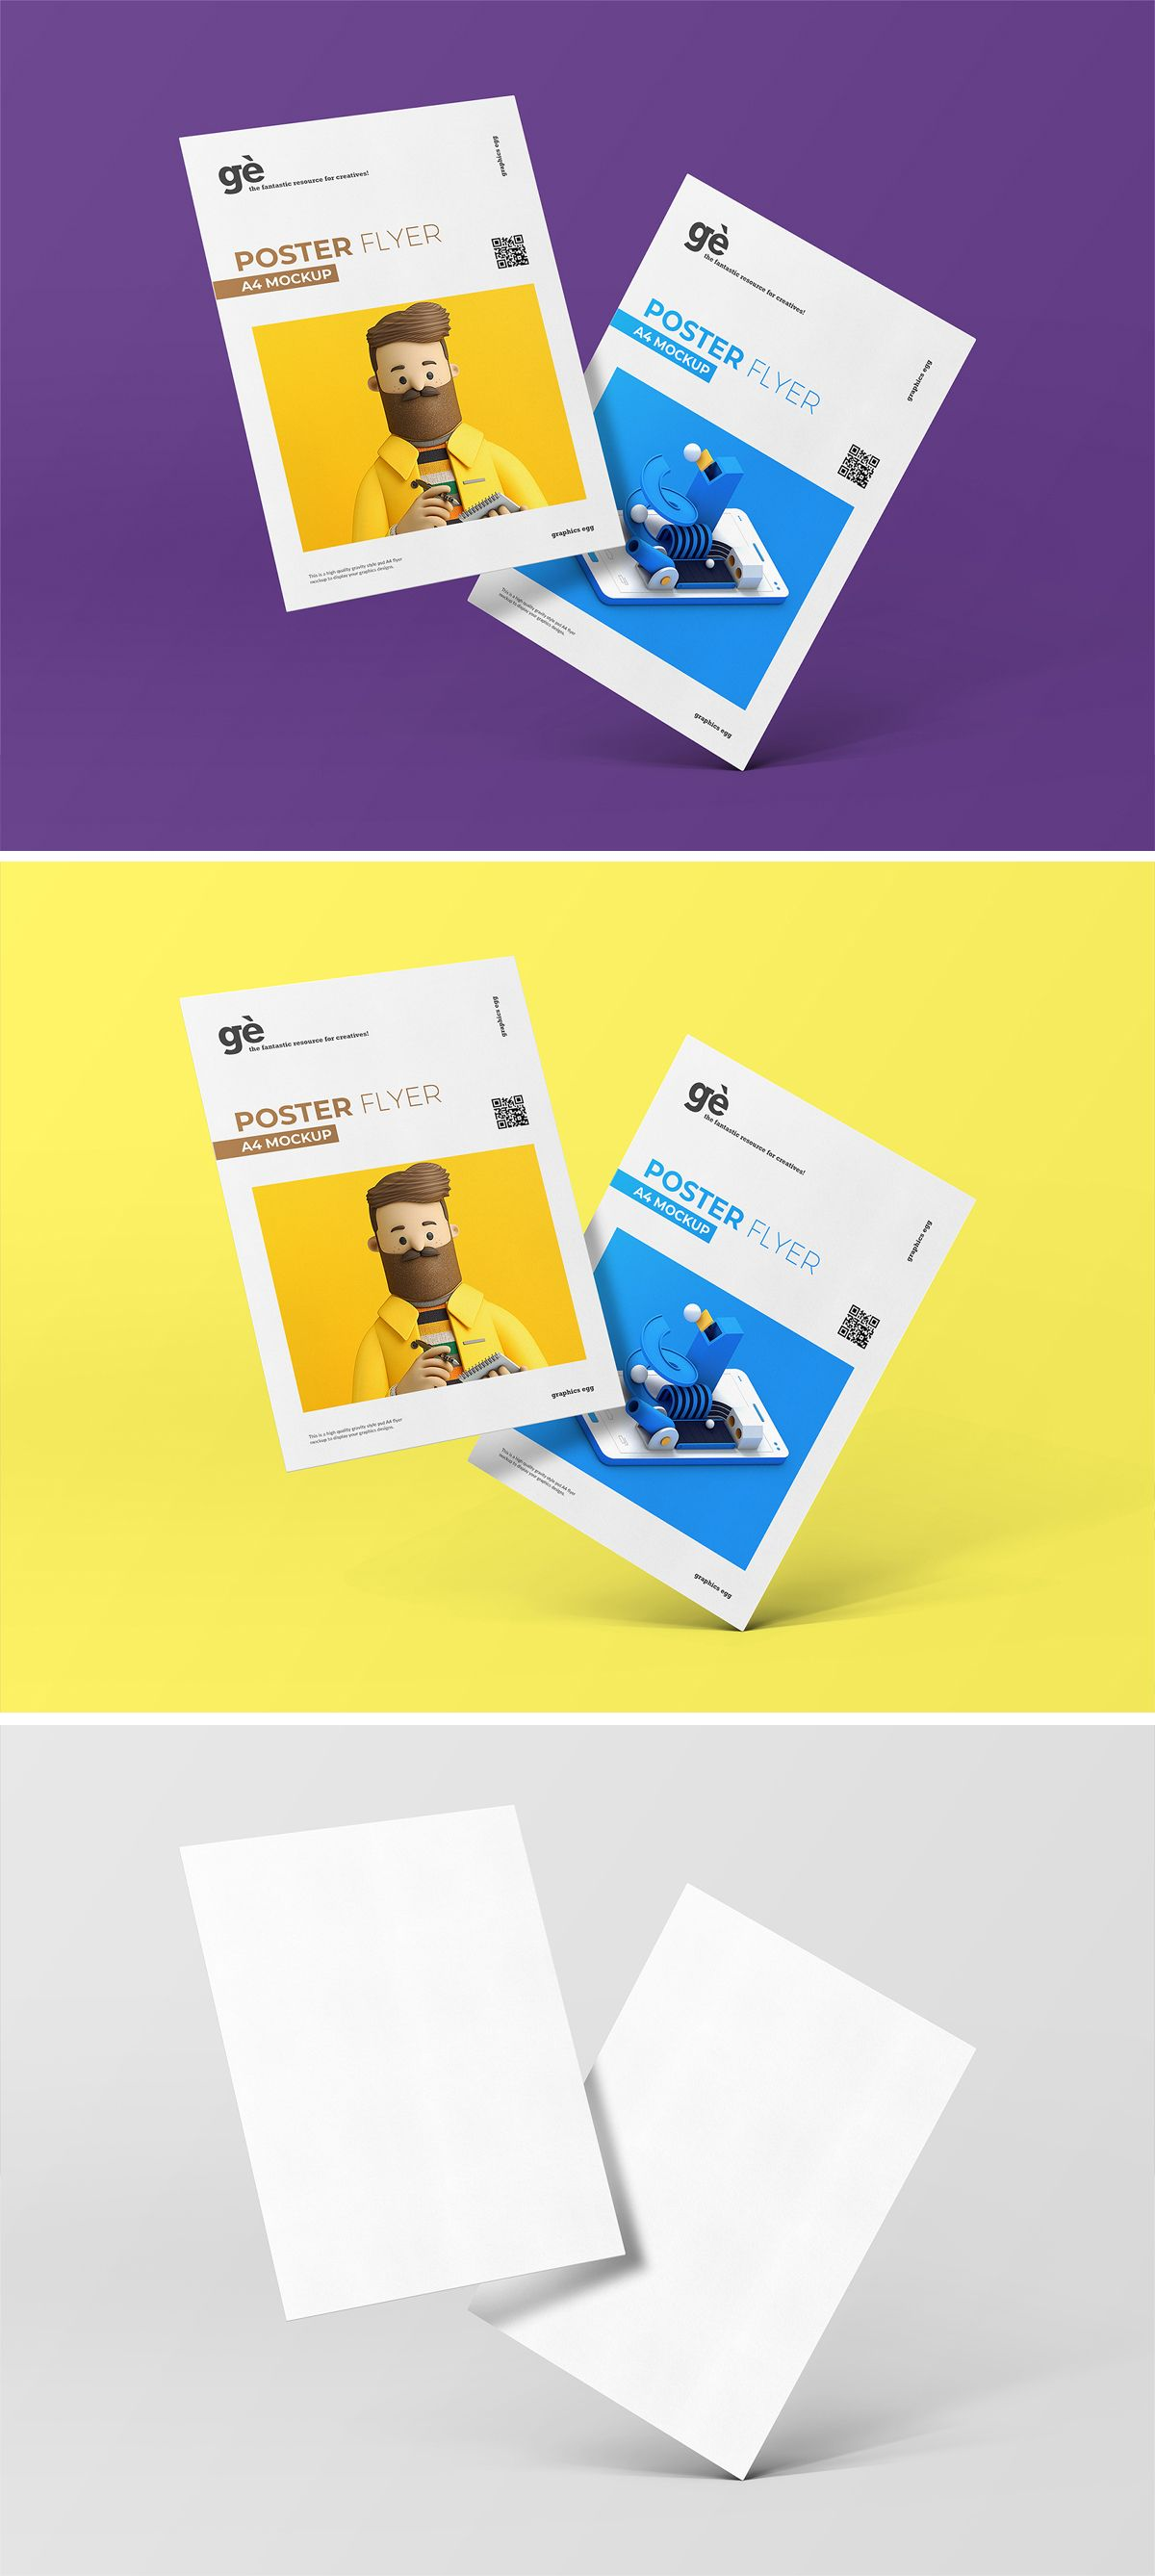 A4 Poster Flyer Mockup Free Download in 2020 Flyer